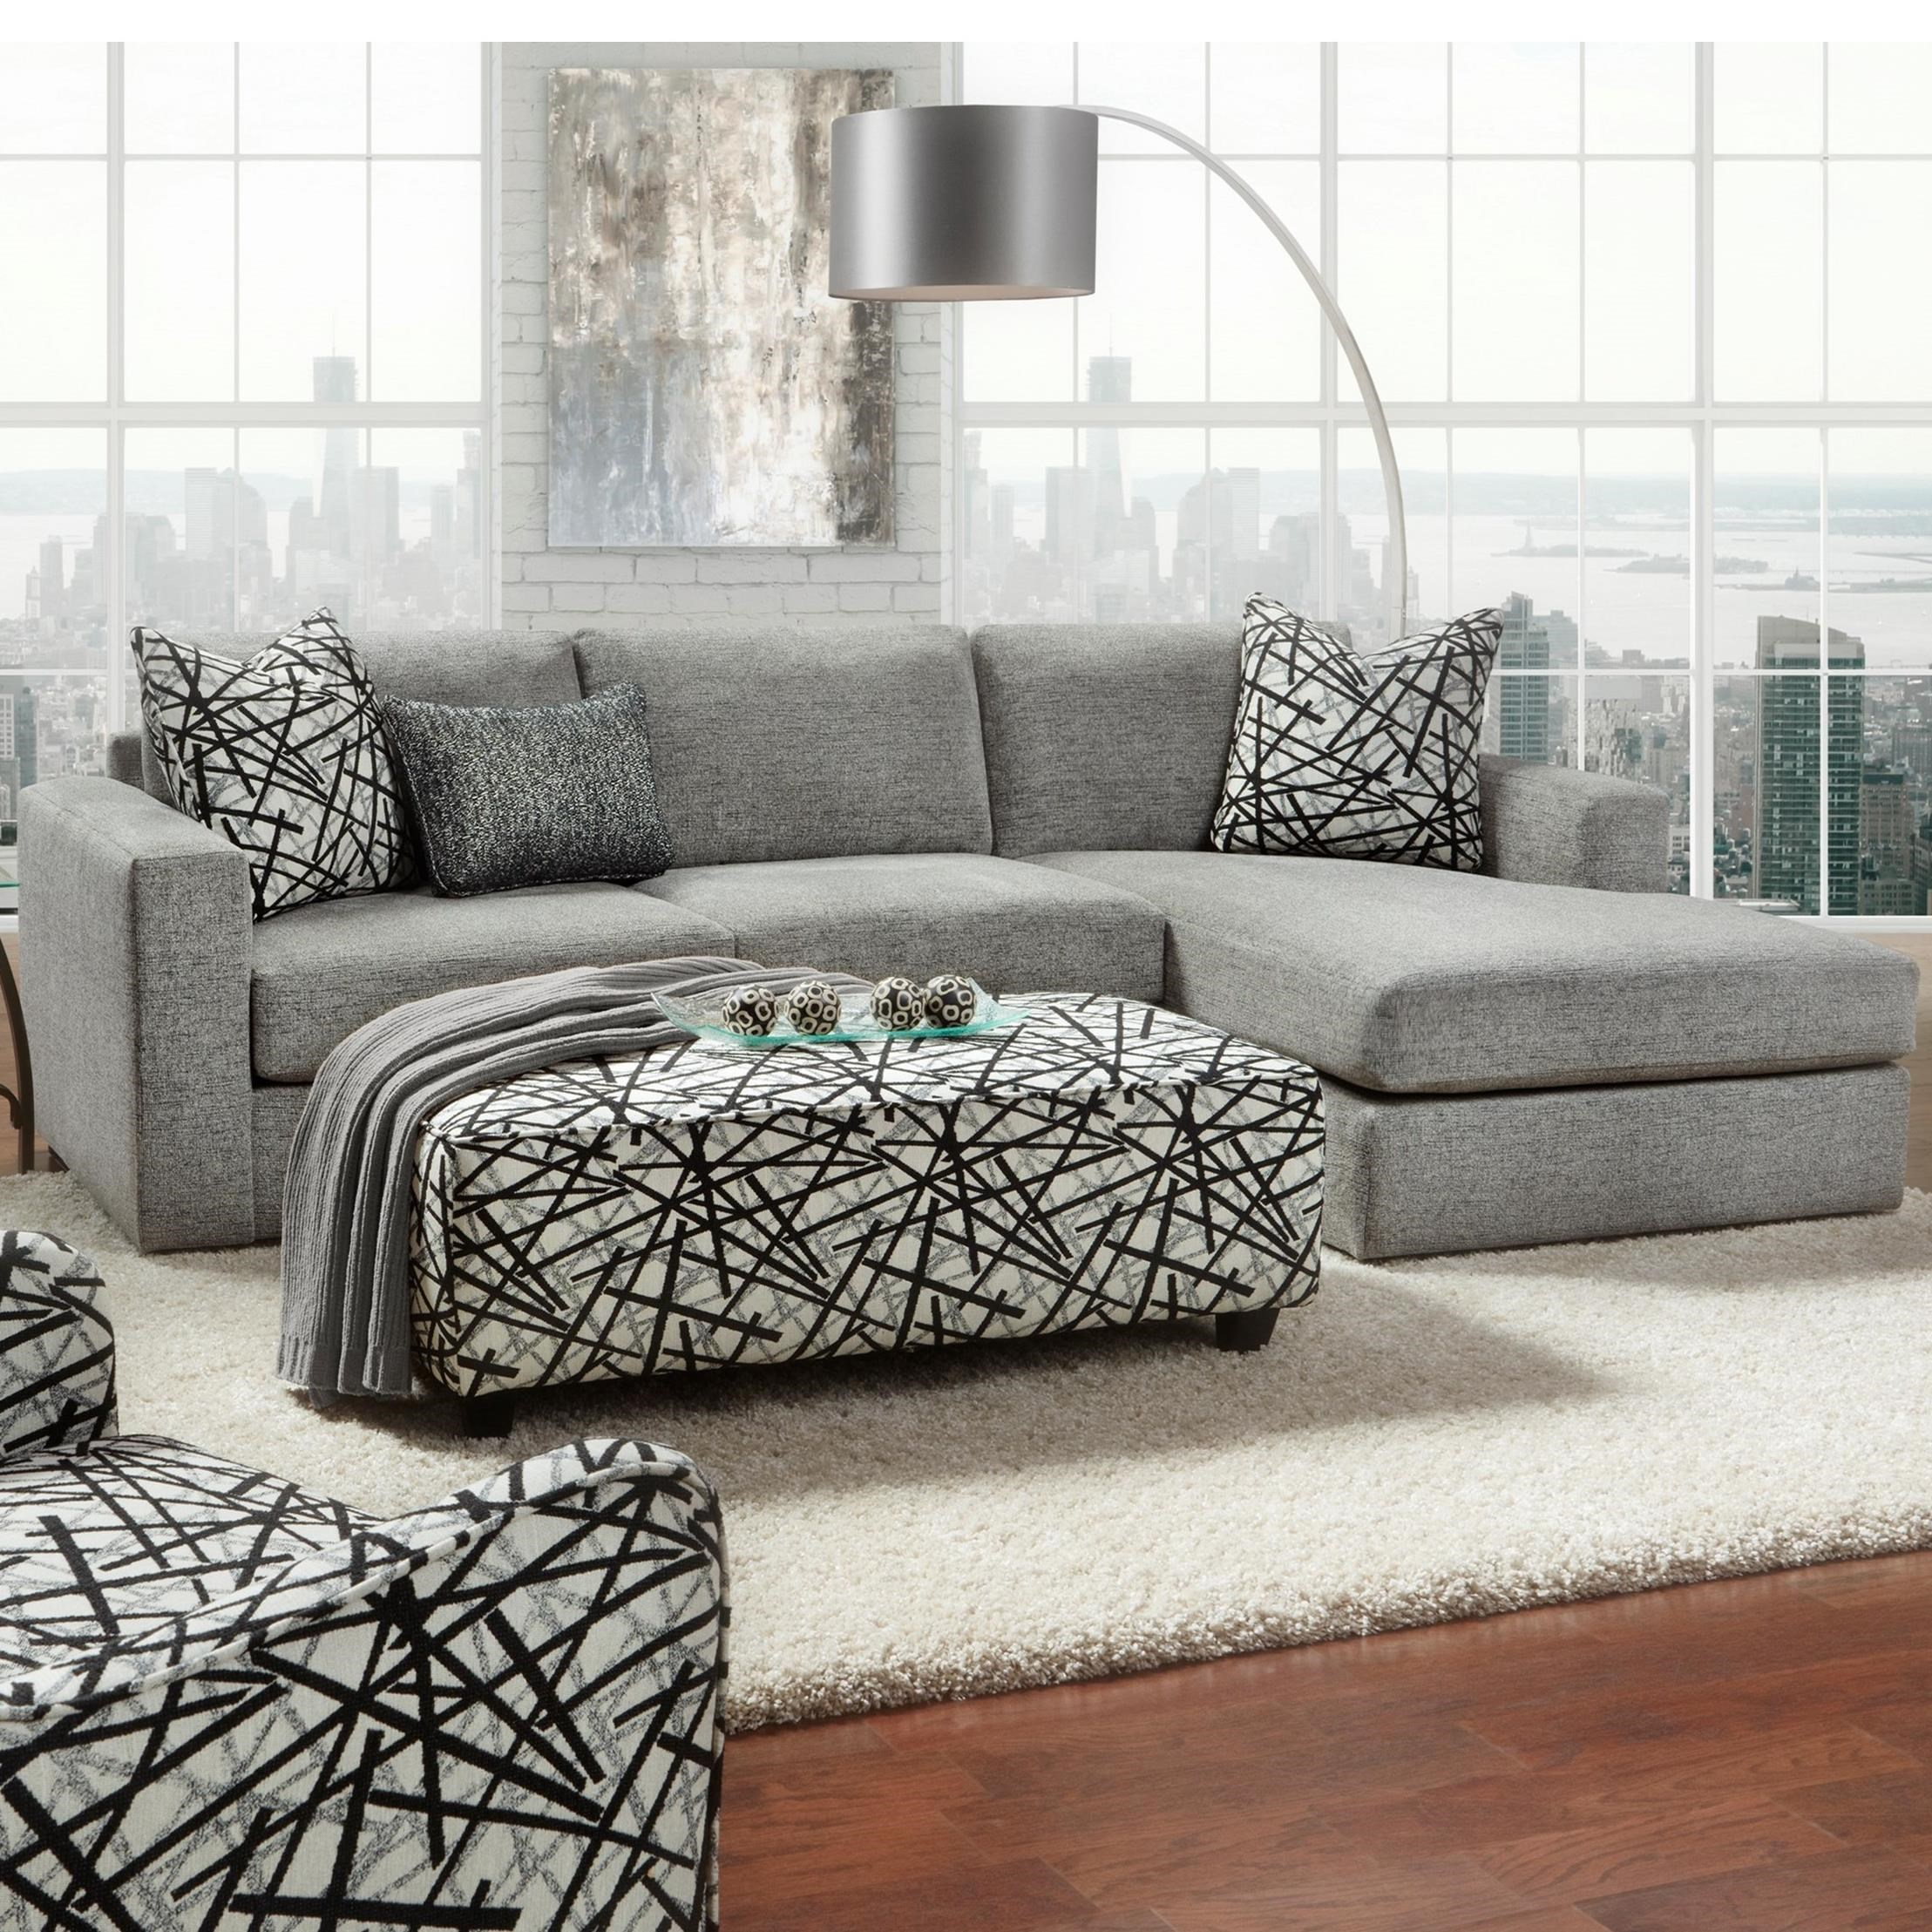 Fusion Furniture 2051 2 Piece Sectional - Item Number: 2051-21LBradley Pewter+26RBradley P